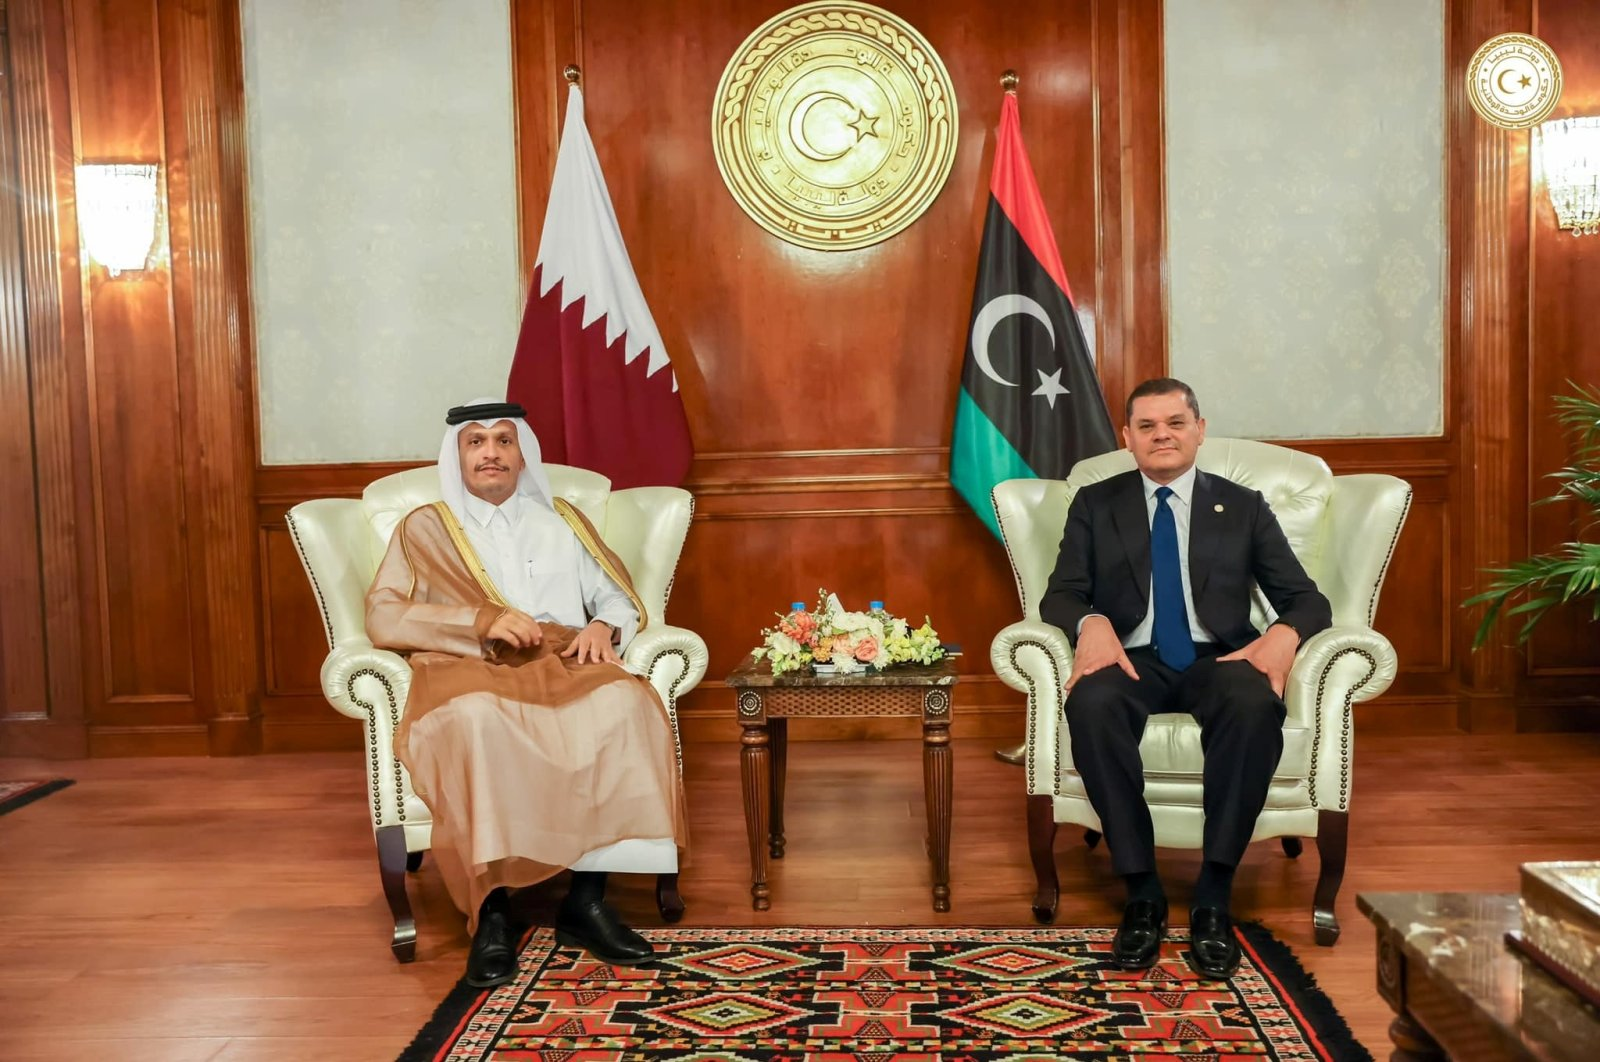 Libyan Prime Minister Abdulhamid Dbeibeh meets with Qatar's Deputy Prime Minister and Minister of Foreign Affairs Mohammed bin Abdulrahman Al Thani in Tripoli, Libya, May 23, 2021. (Media Office of the Prime Minister handout via Reuters)